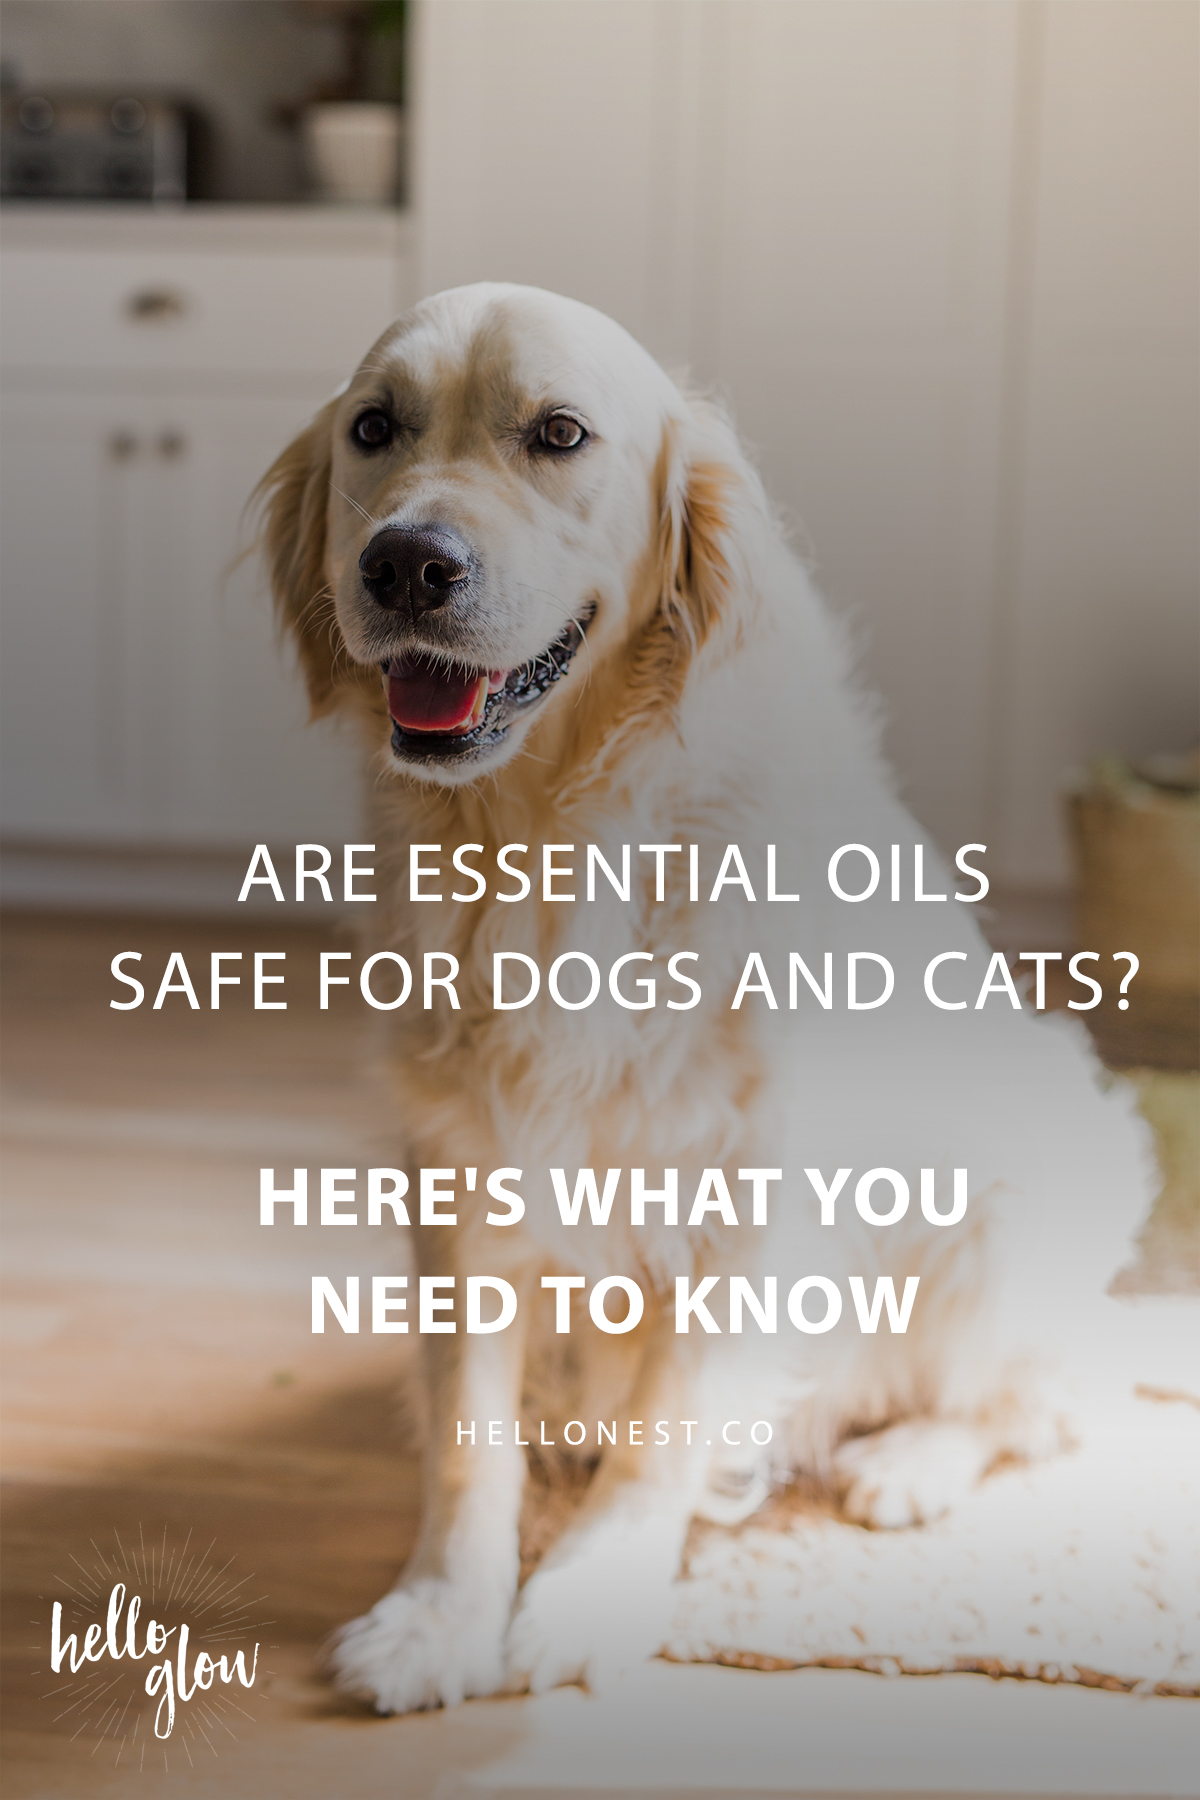 ARE ESSENTIAL OILS SAFE FOR DOGS?